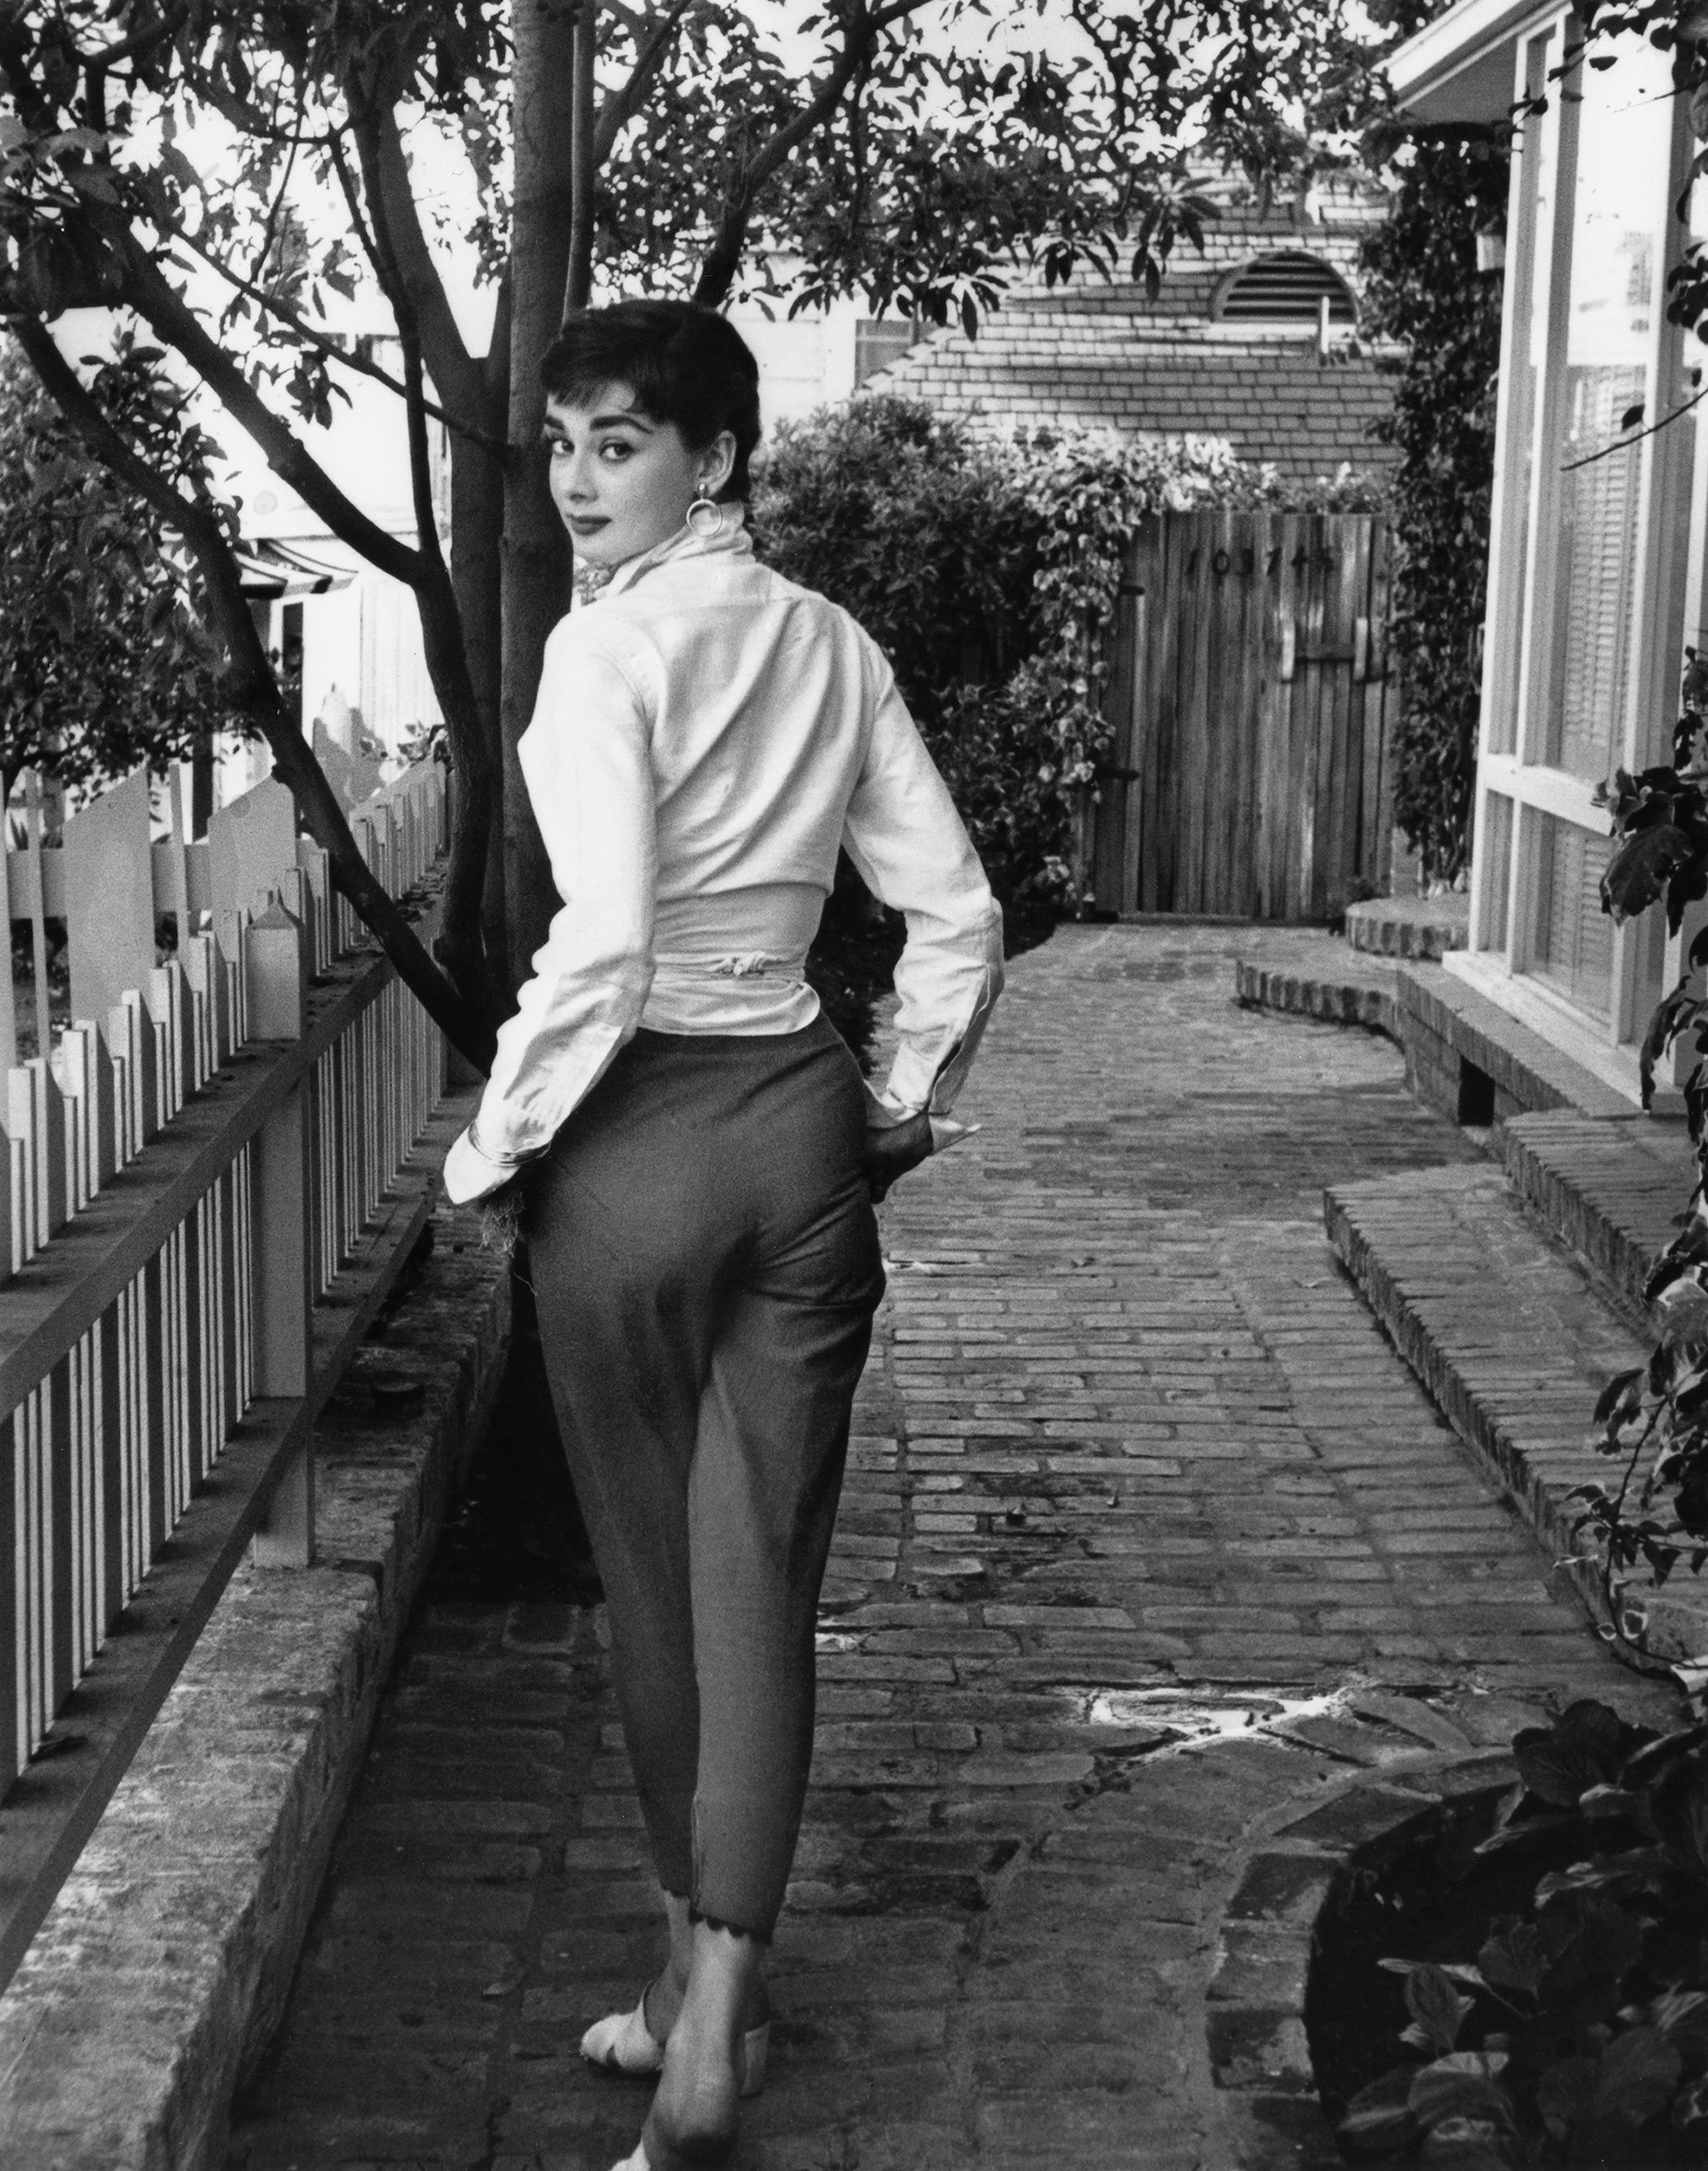 audrey-strolls-in-front-of-her-beverly-hills-apartment-hepburn-hollywood-1953.jpg